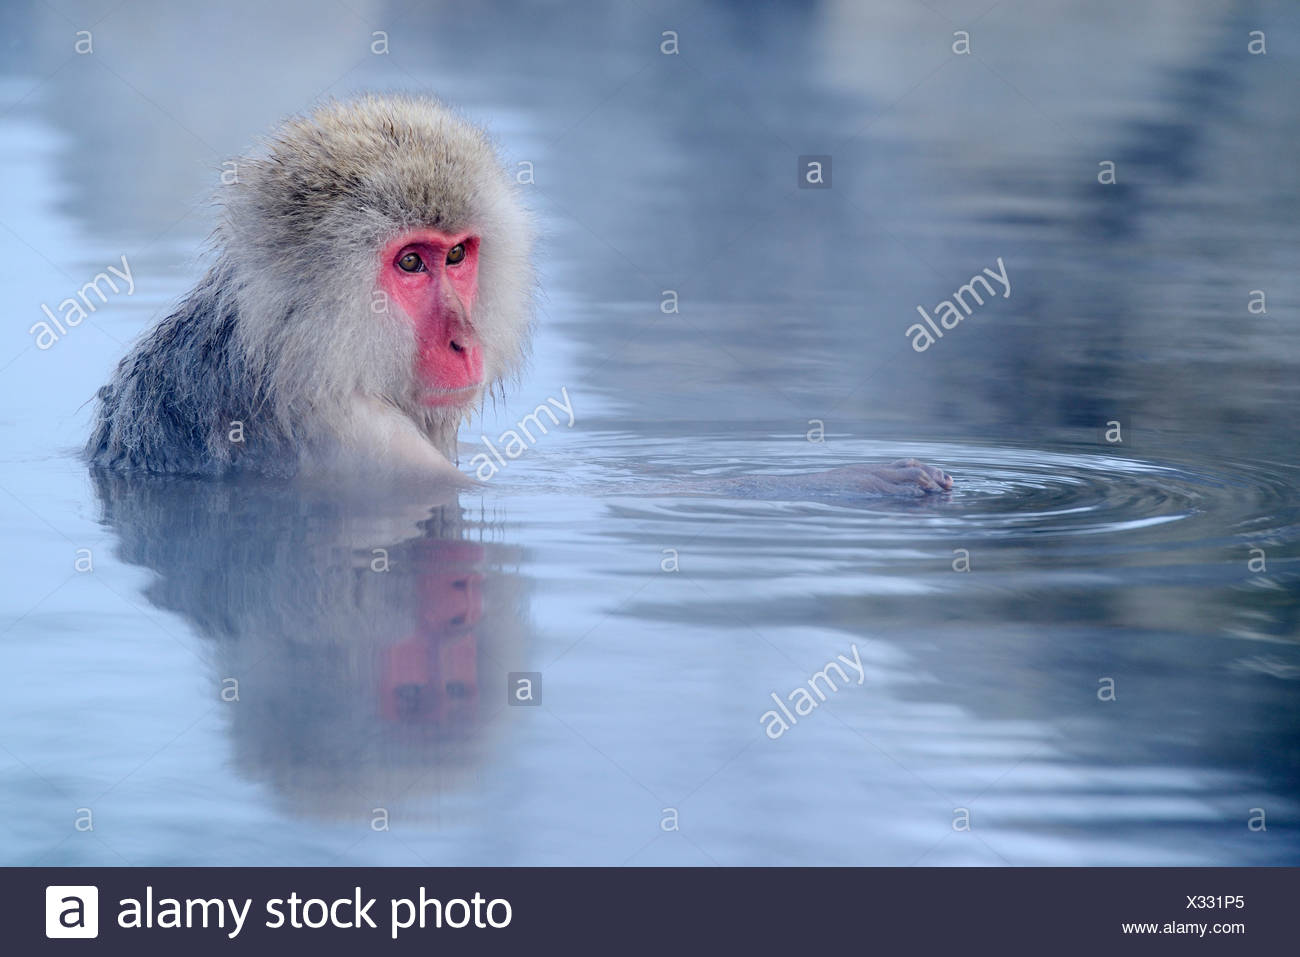 Japanese Macaque or Snow Monkey (Macaca fuscata) taking a bath in a ...